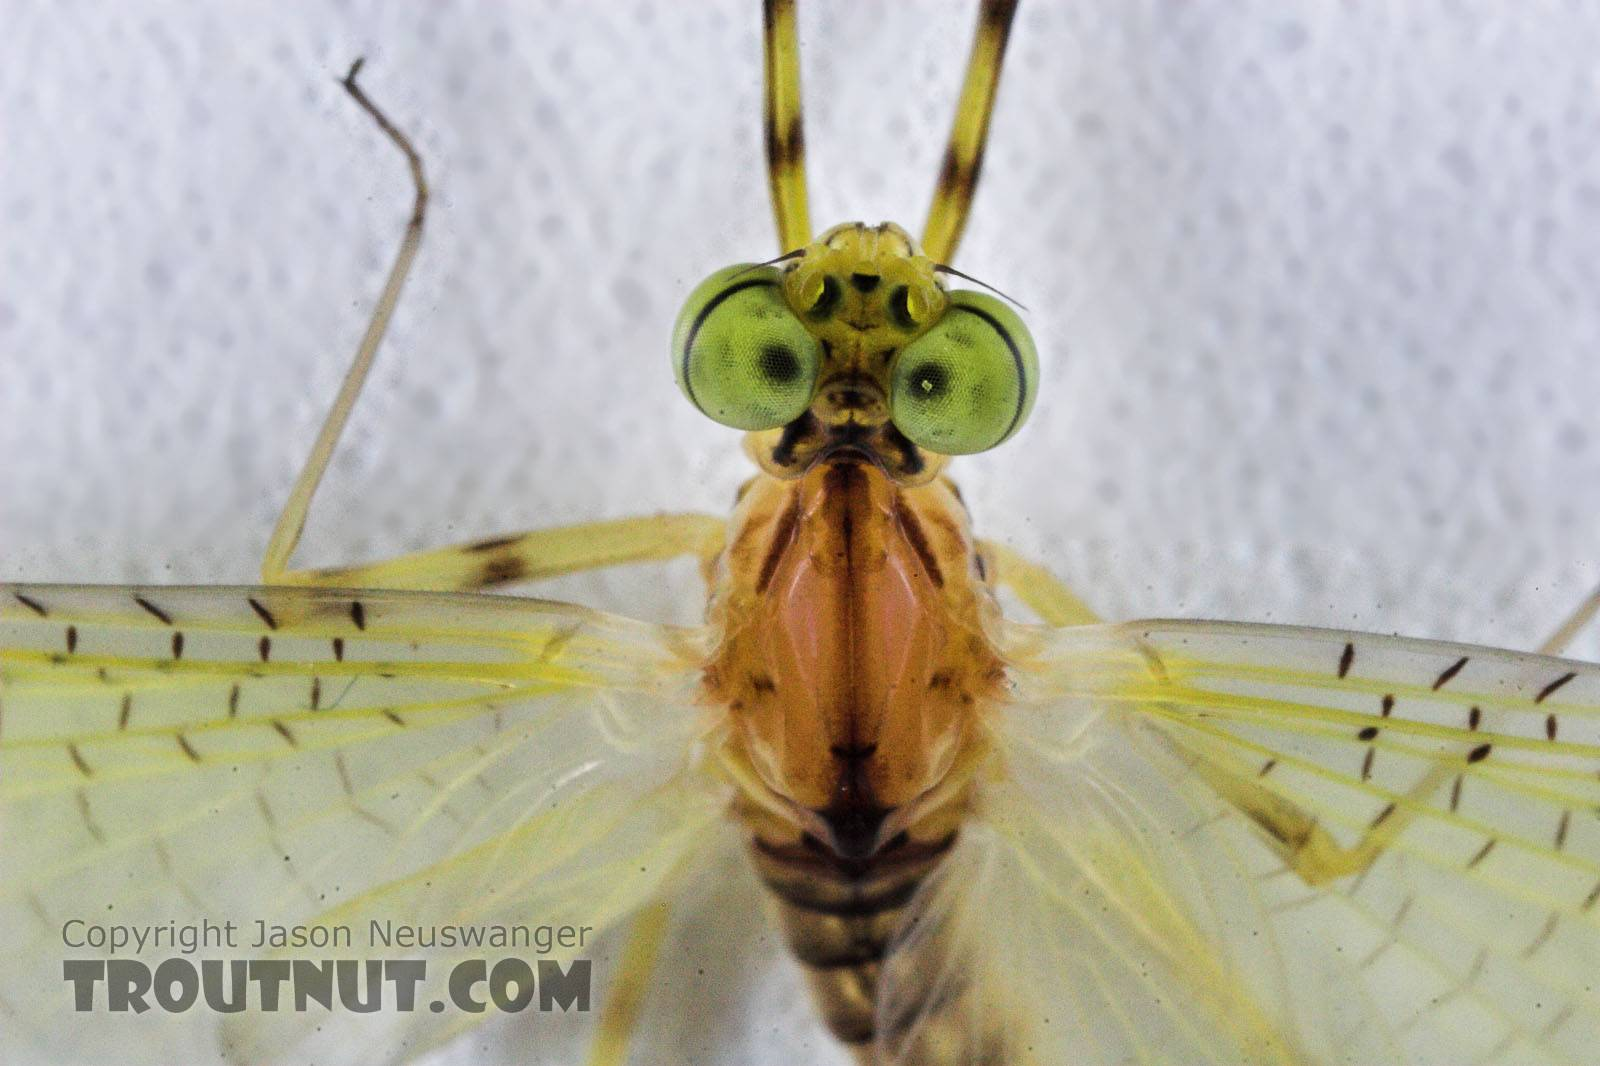 Male Stenacron (Light Cahills) Mayfly Dun from the Teal River in Wisconsin